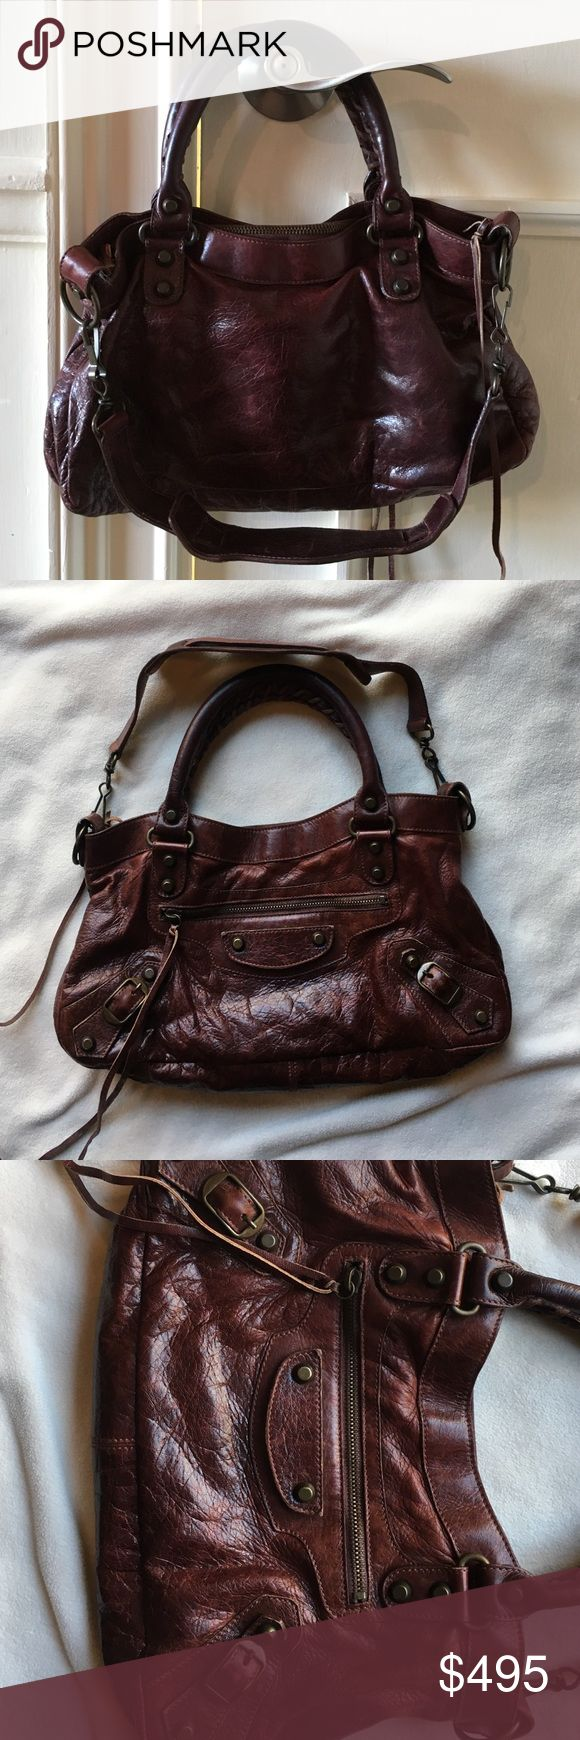 """100% Authentic Balenciaga Motorcycle Mini Beautiful, brown/burgundy. Like new condition, """"very"""" gently used. No visible wear. Super clean inside with pocket mirror. Non-Smoking home! Balenciaga Bags Shoulder Bags"""